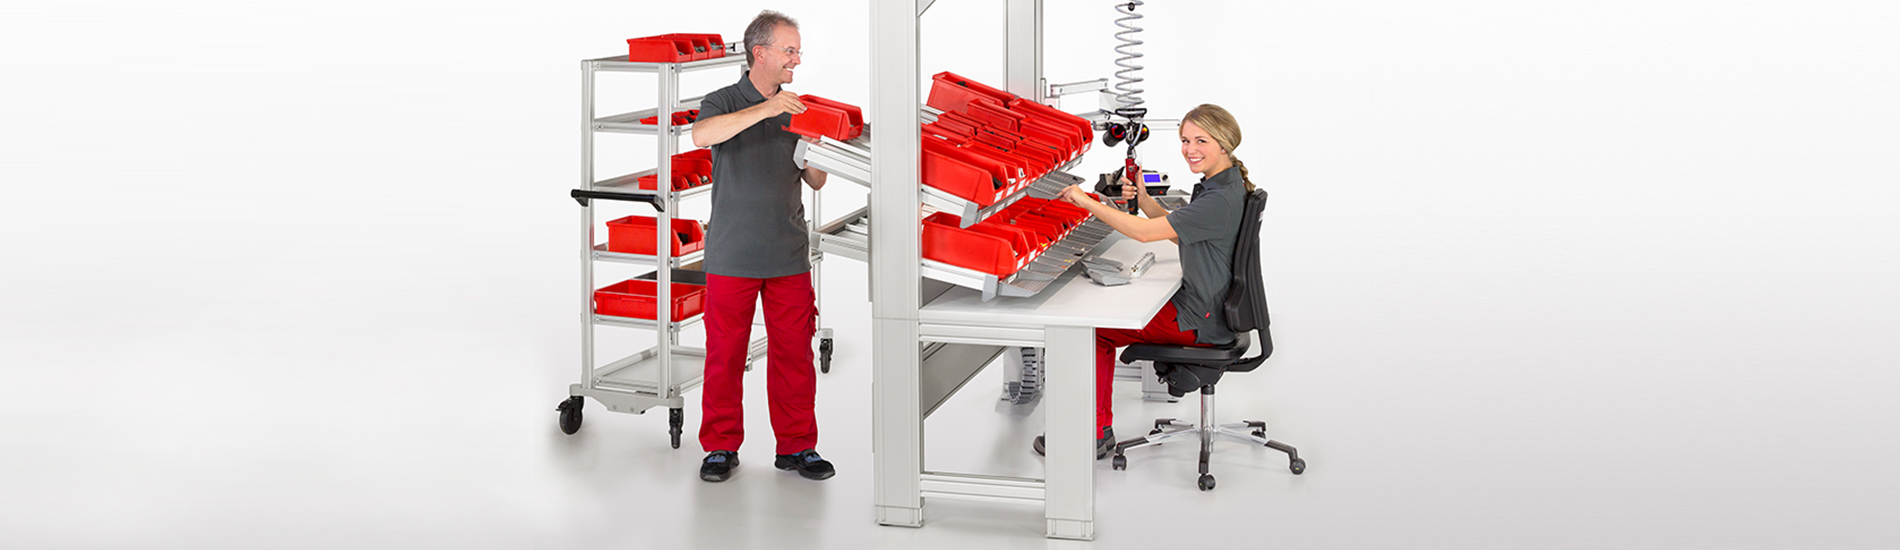 Ergonomic solutions for manual production